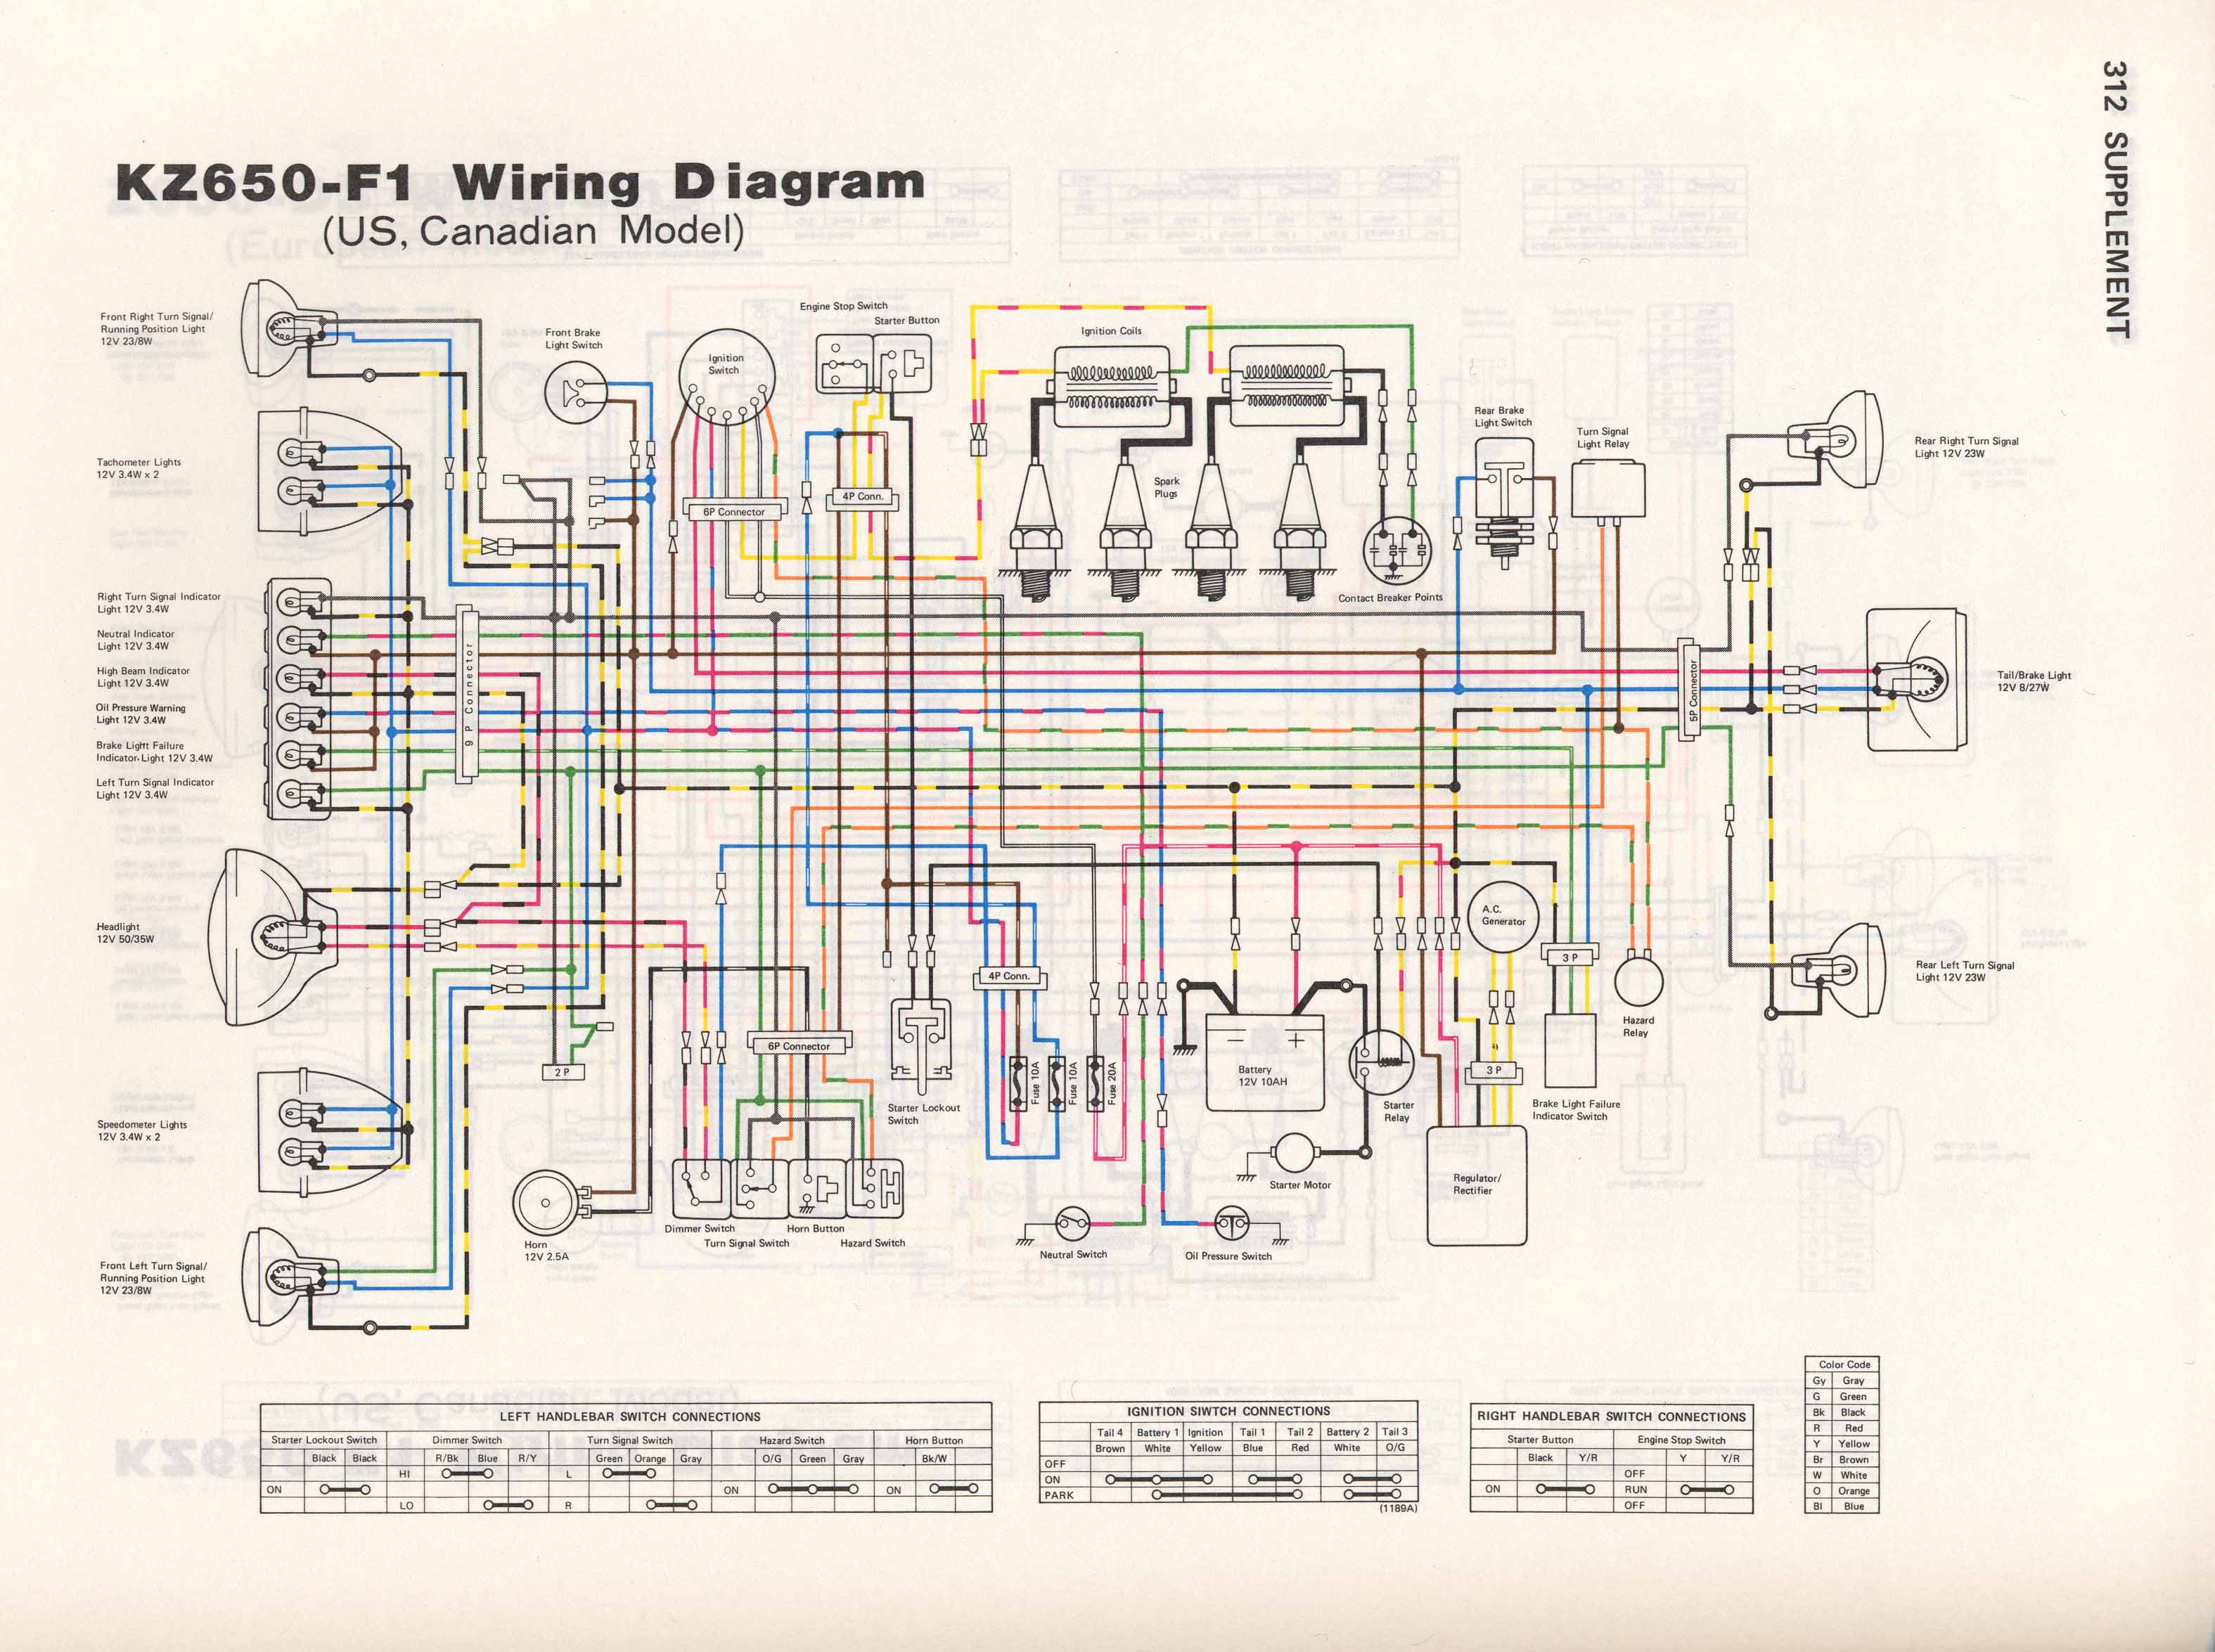 1982 Kz650 Wiring Diagram | WIRING DIAGRAM eBOOK on